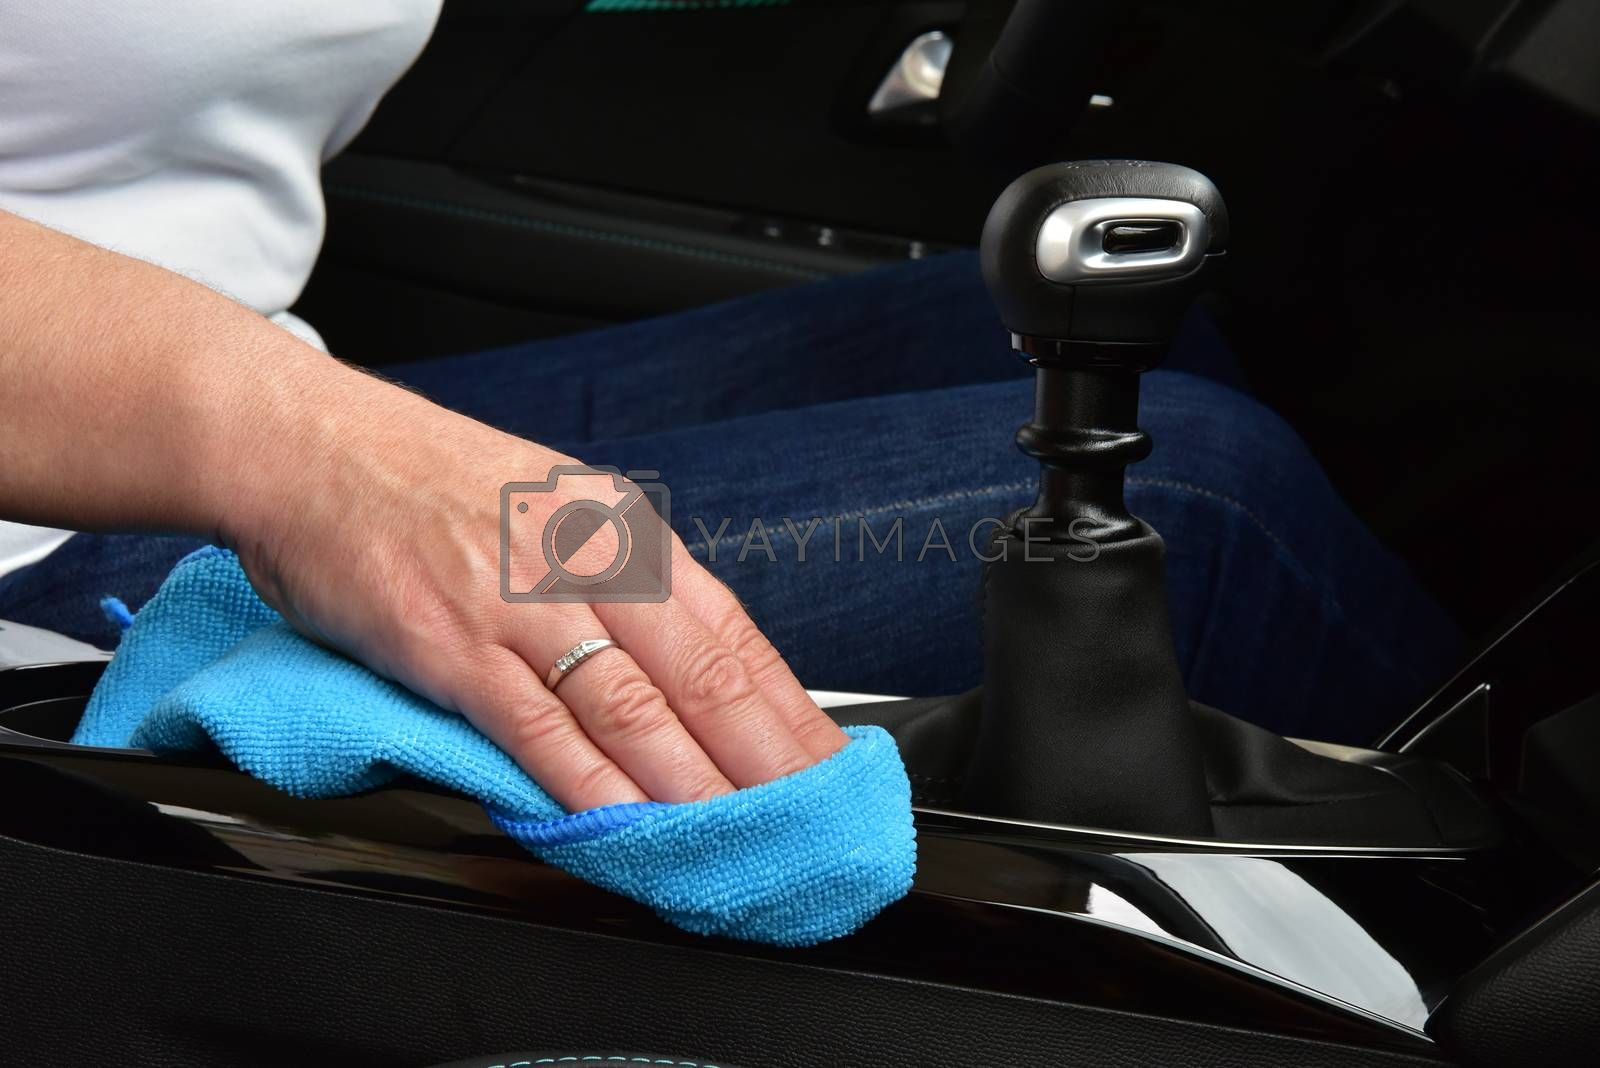 Royalty free image of Cleaning the car console with a microfiber cloth by aselsa